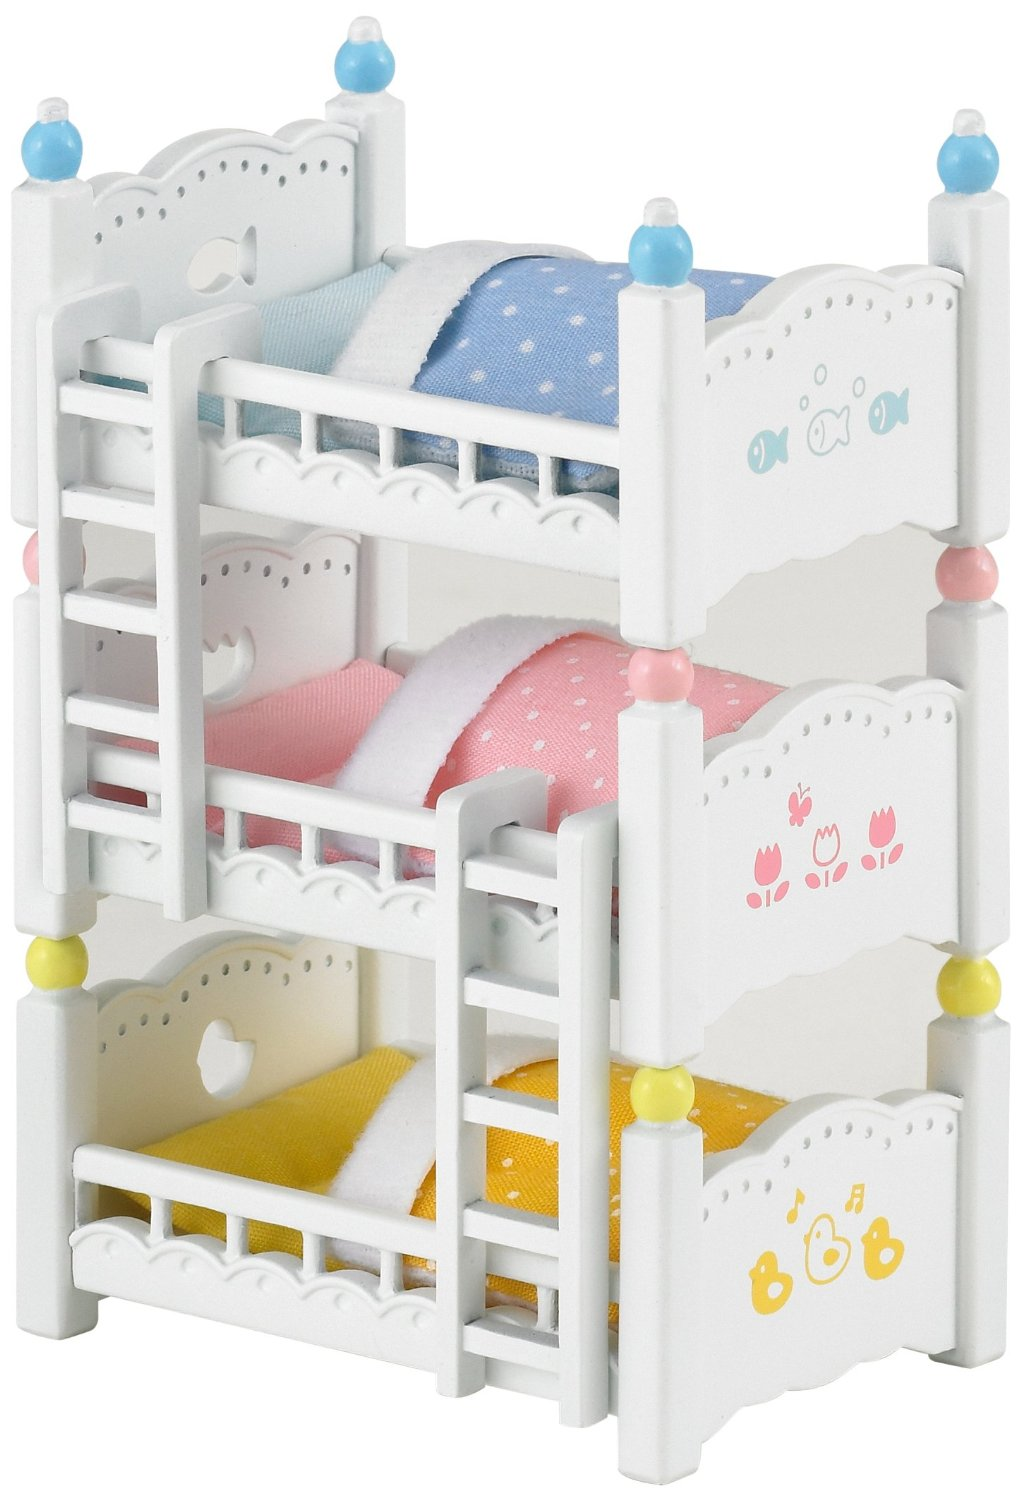 Picture of: Beds Not For Sale Sylvanian Families Bedding Set Handmade For Sylvanian Families Bunk Beds Gamersjo Com